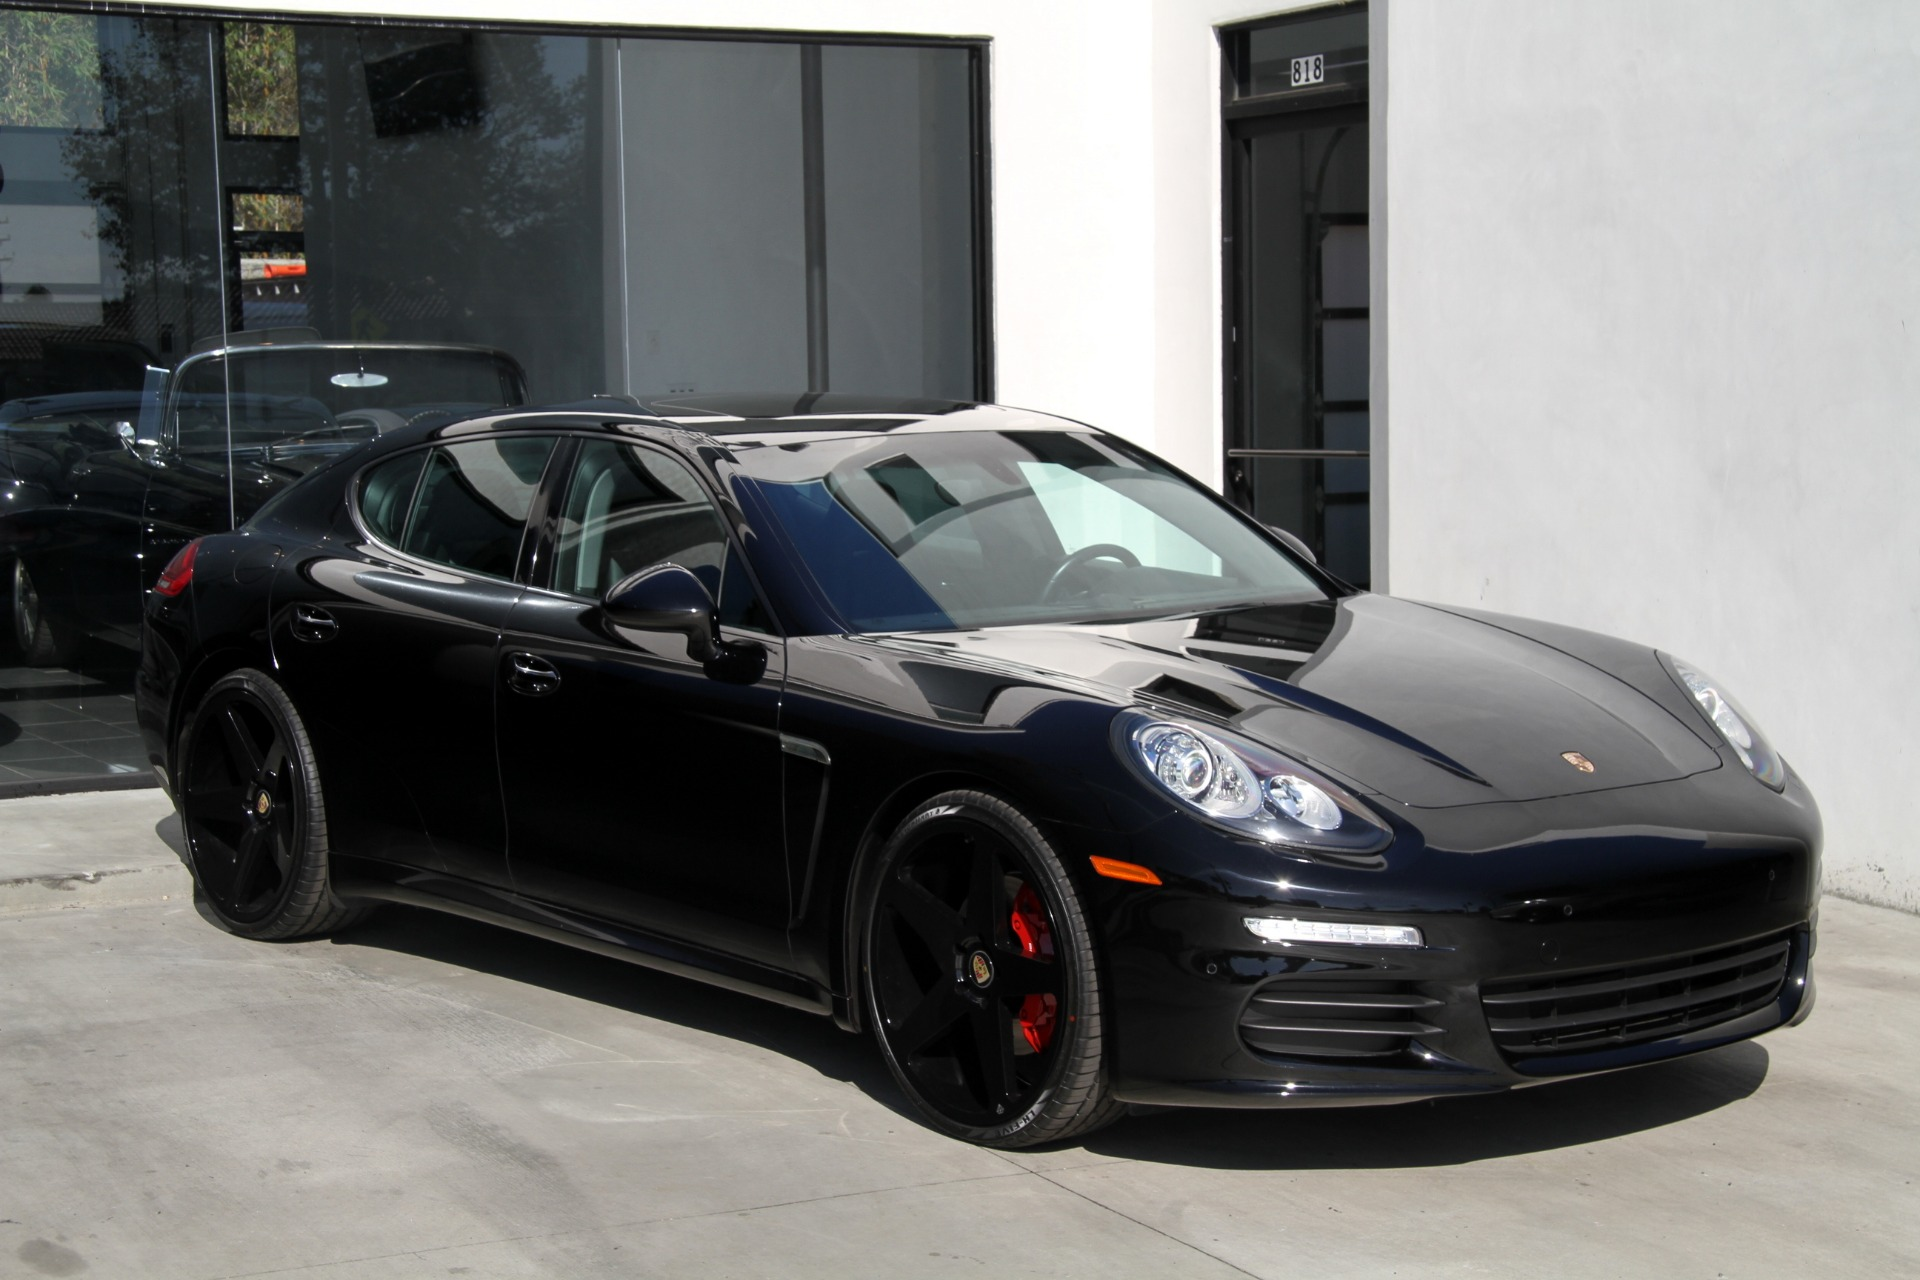 Wheels For Sale Near Me >> 2015 Porsche Panamera Stock # 6270 for sale near Redondo Beach, CA | CA Porsche Dealer